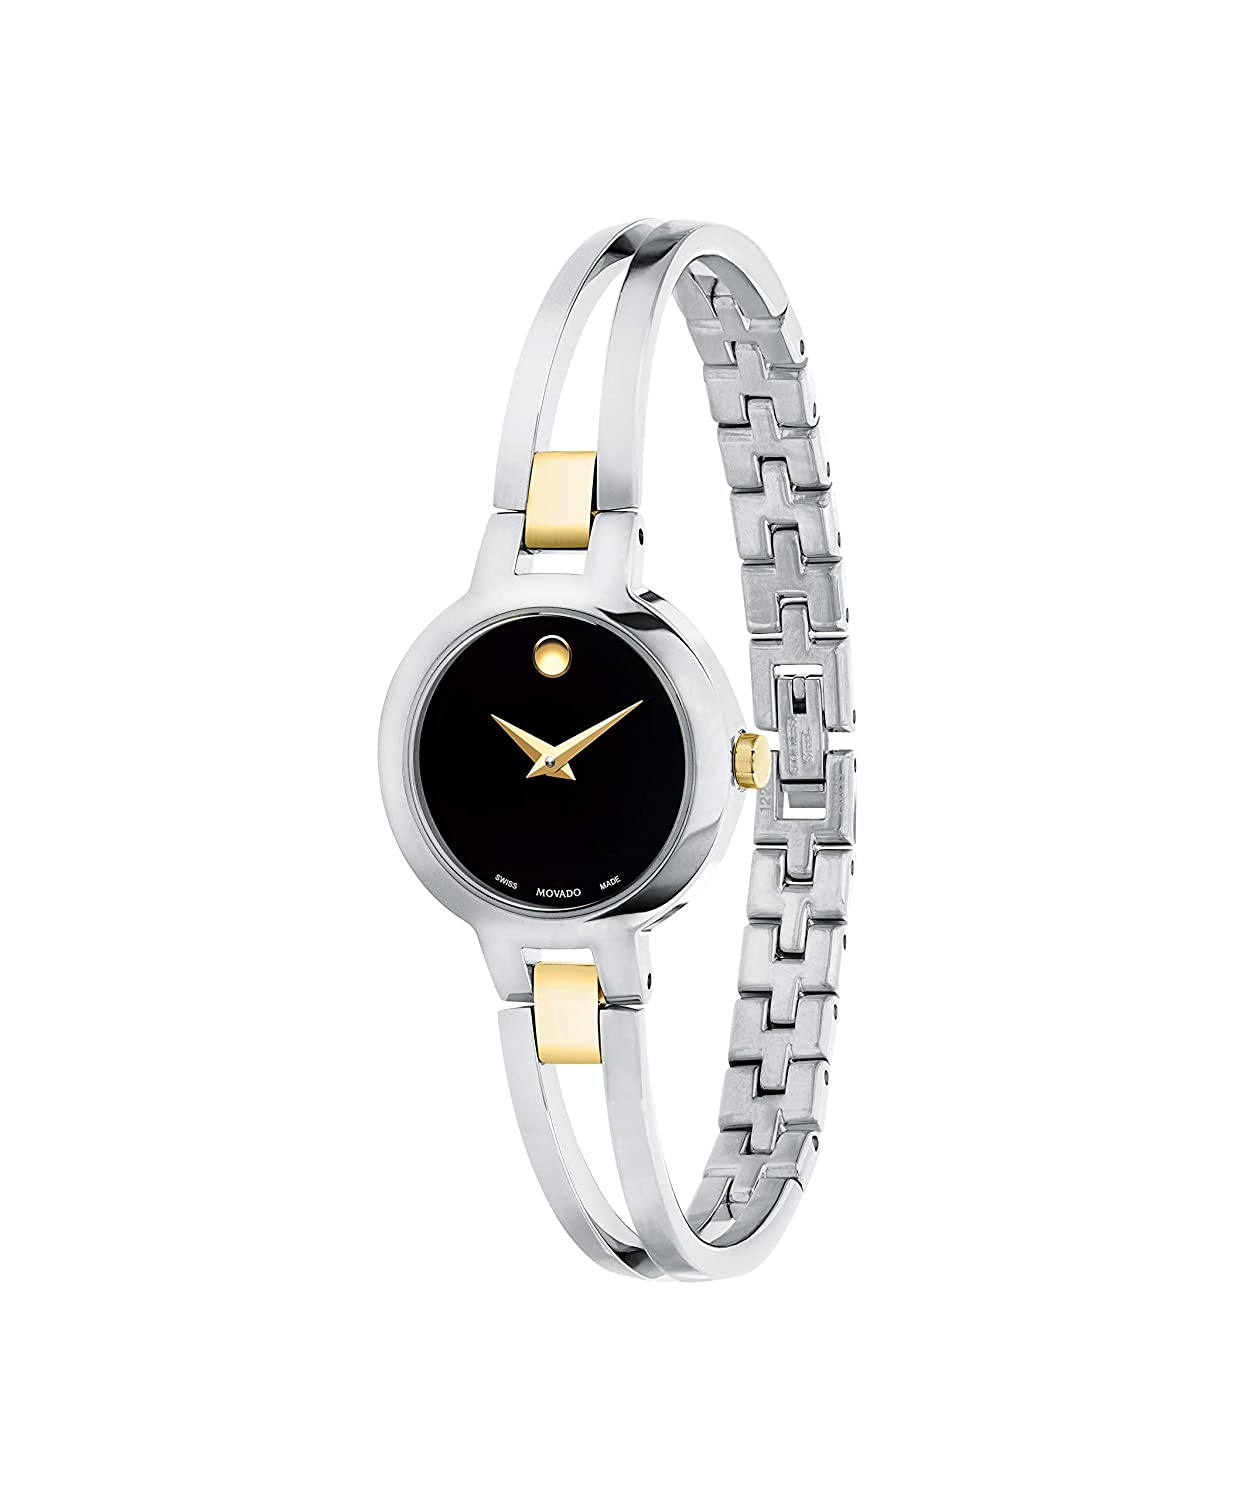 Movado Amorosa, Stainless Steel Yellow PVD Case, Black Dial, Stainless Steel Yellow PVD Bangle, Women, 0607184